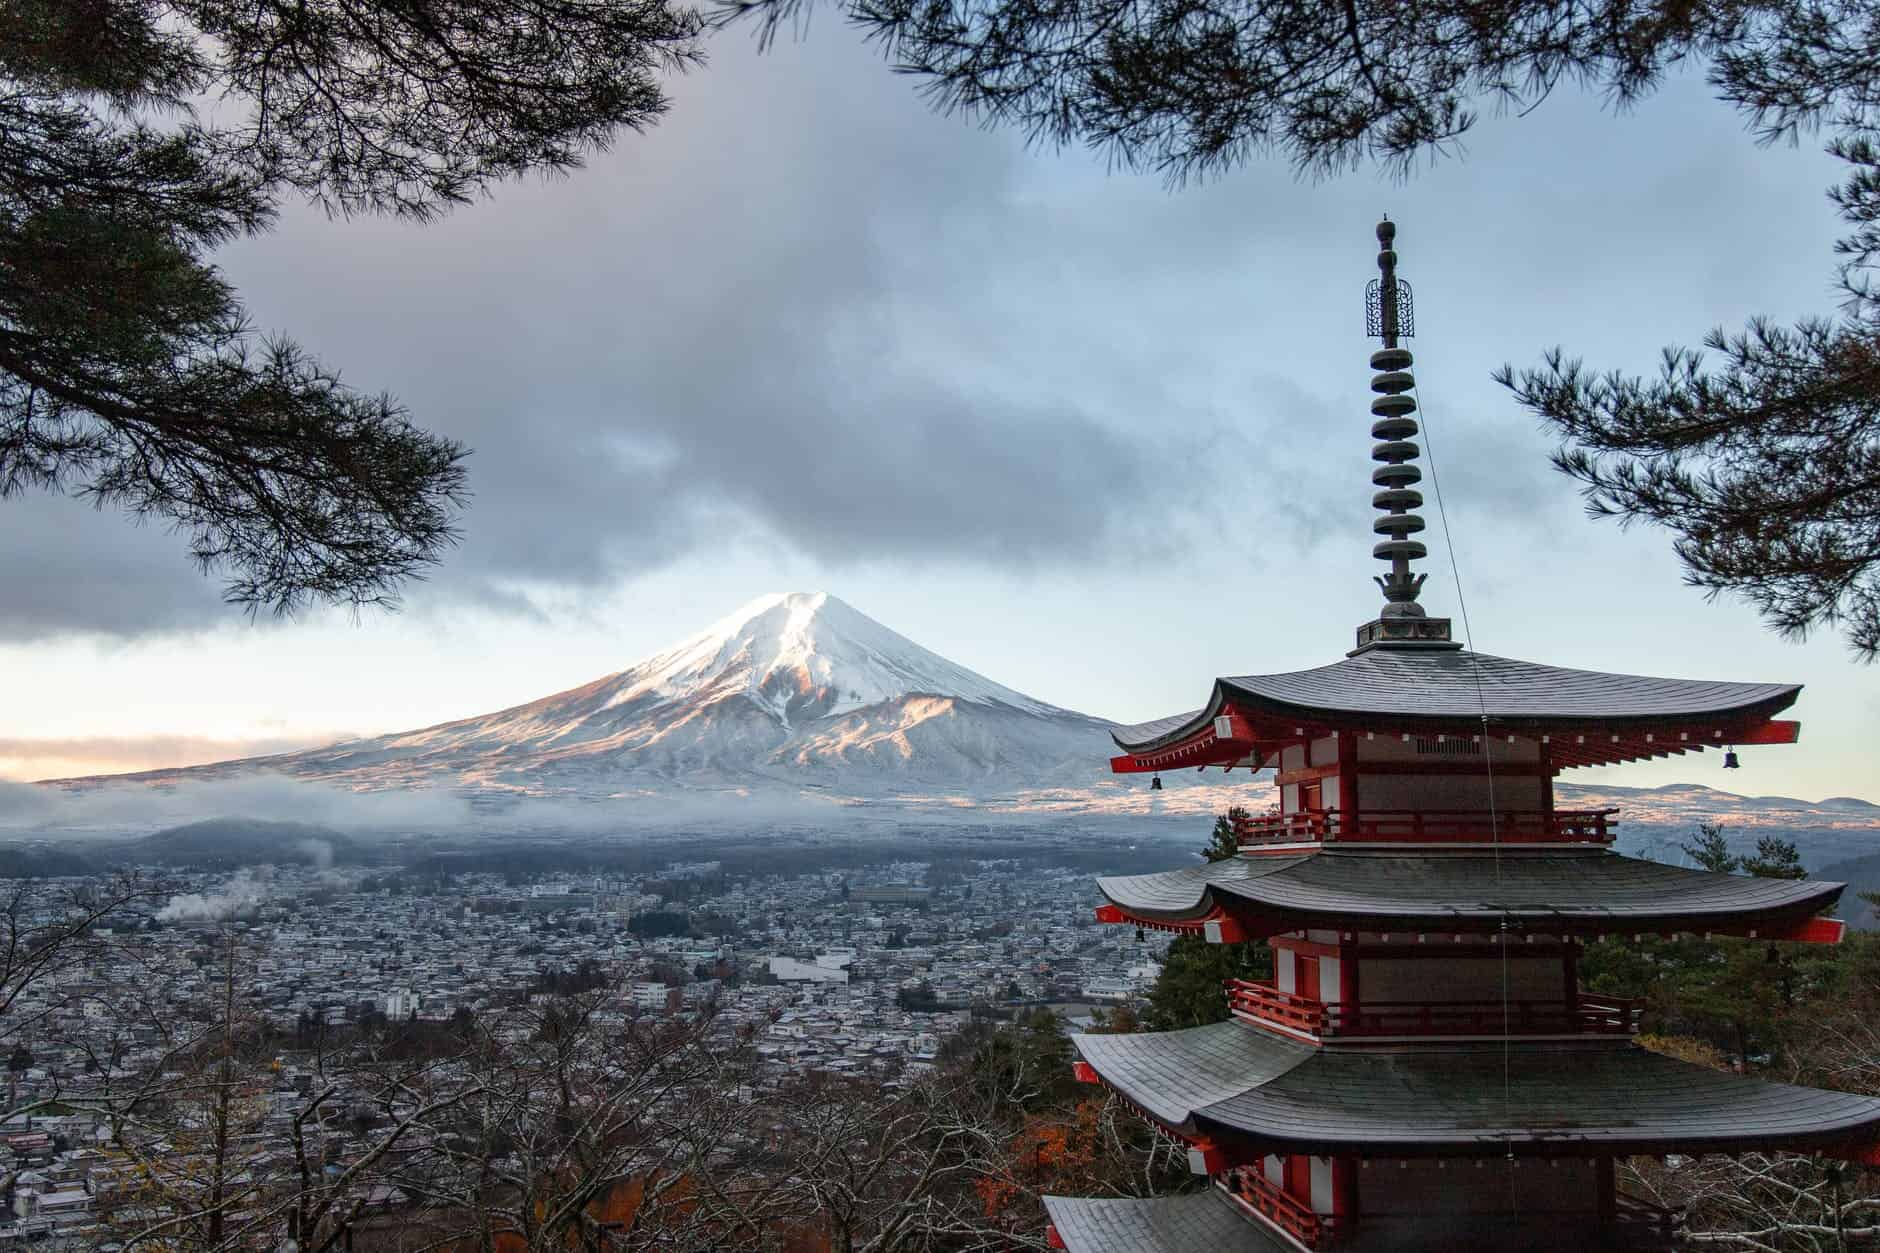 Japan Tourism Places - Find Quality Accommodation